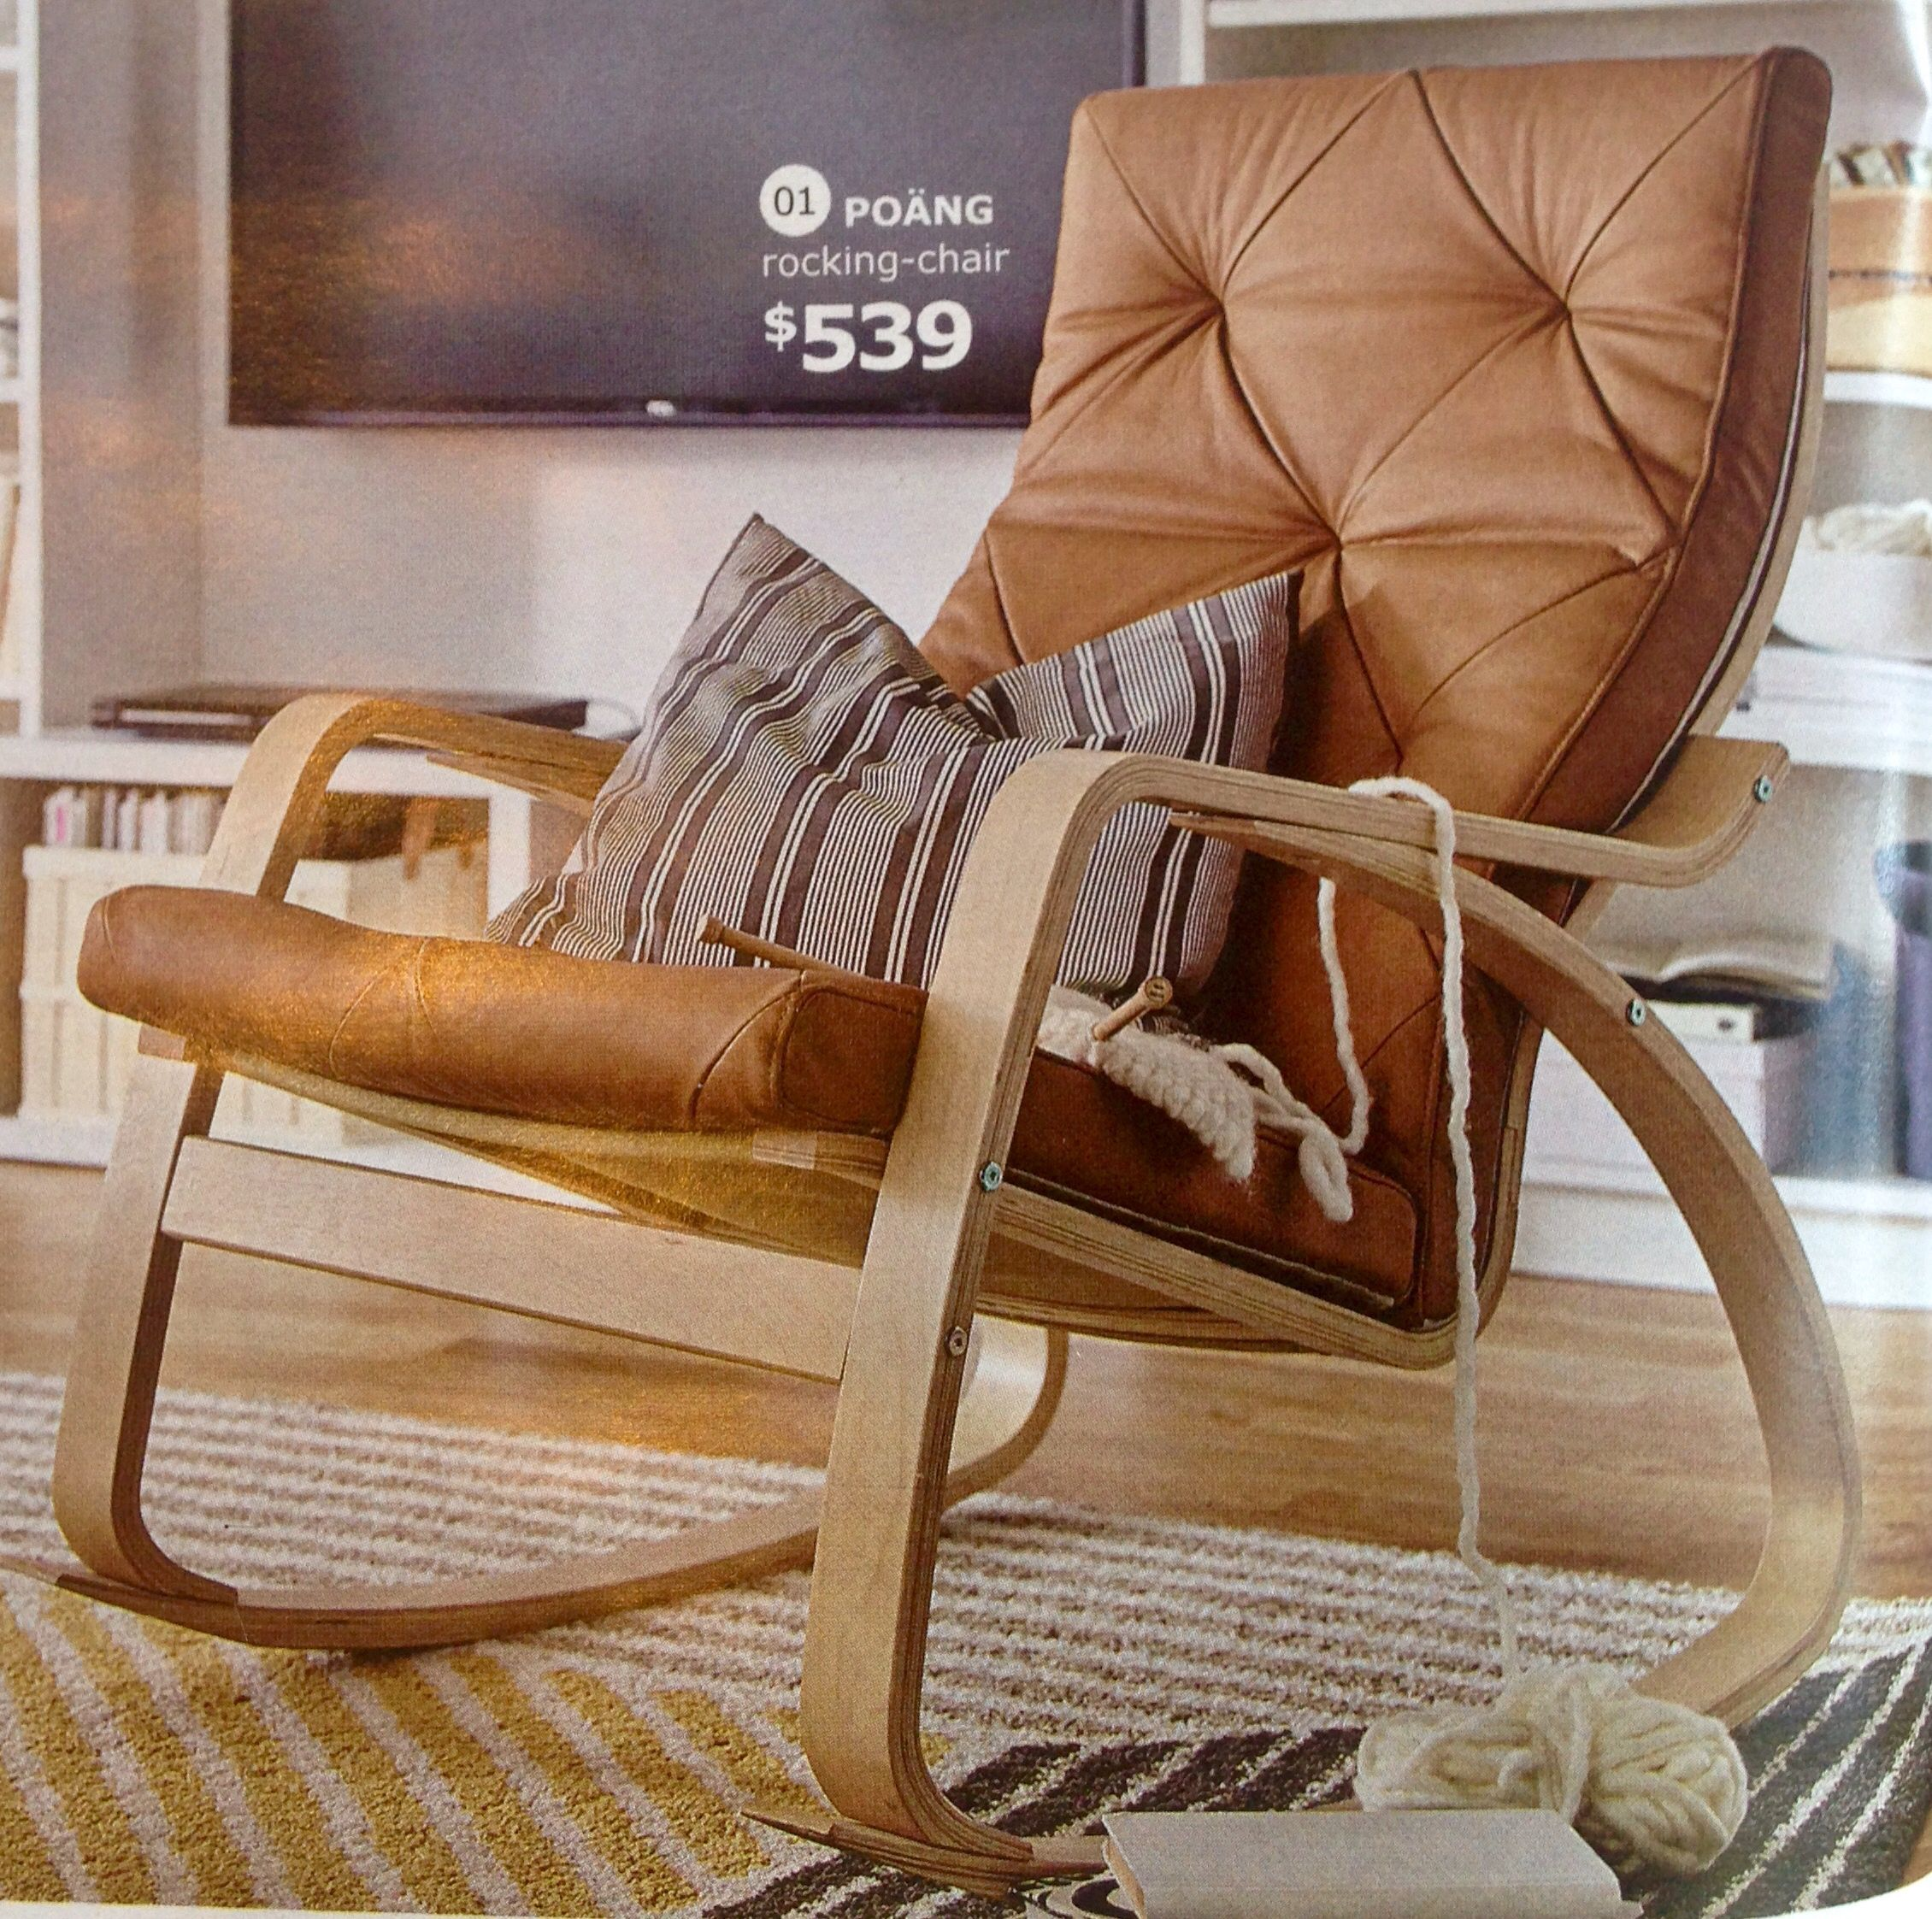 Ikea Poang Rocking Chair Seglora Natural Leather Cover Birch Veneer ...